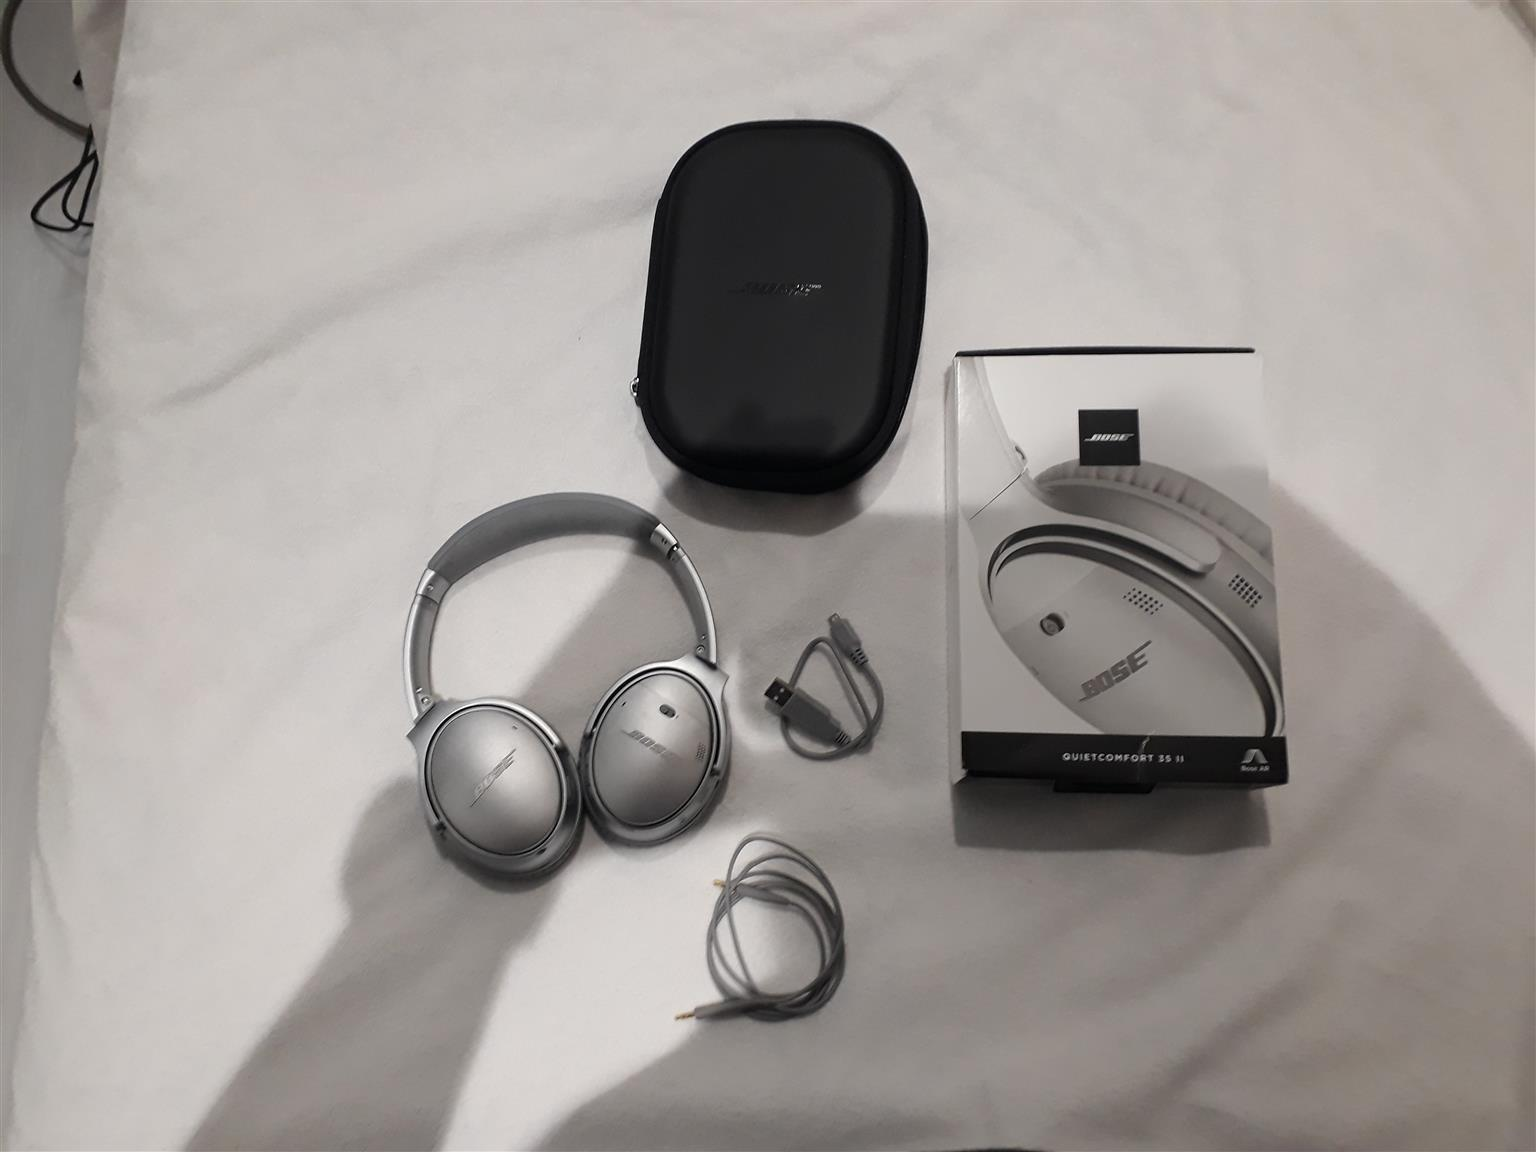 Bose noise cancelling headsets